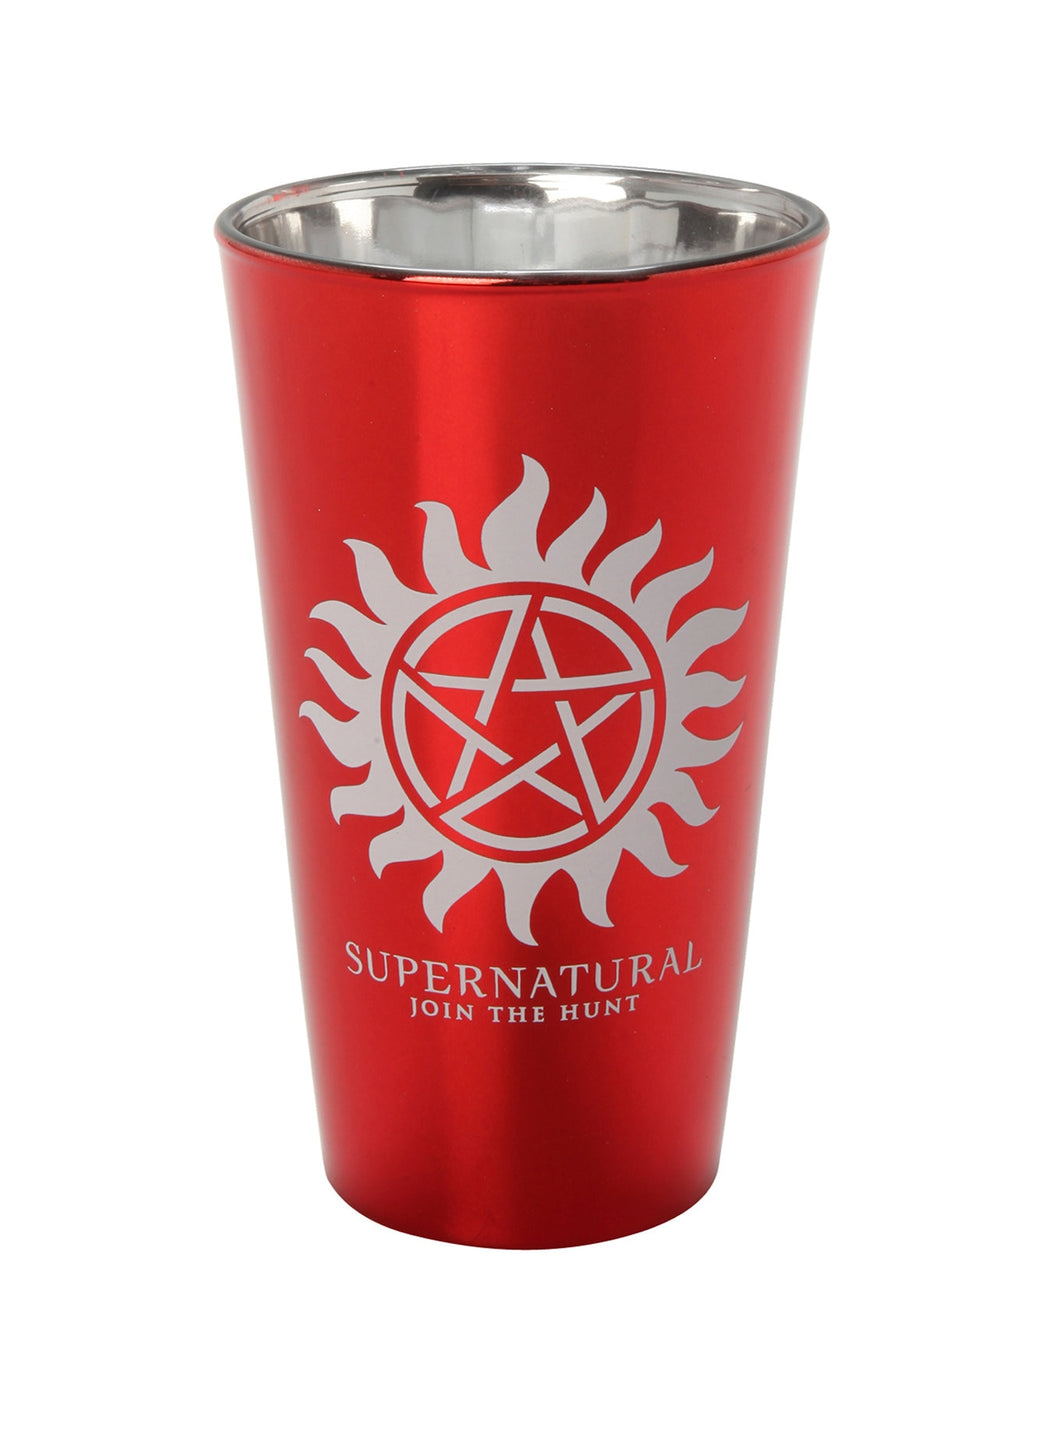 Supernatural JOIN THE HUNT Red Aluminium Plated Pint Glass NO DEMONS DOWN THE HATCH, Set of 1, 16oz